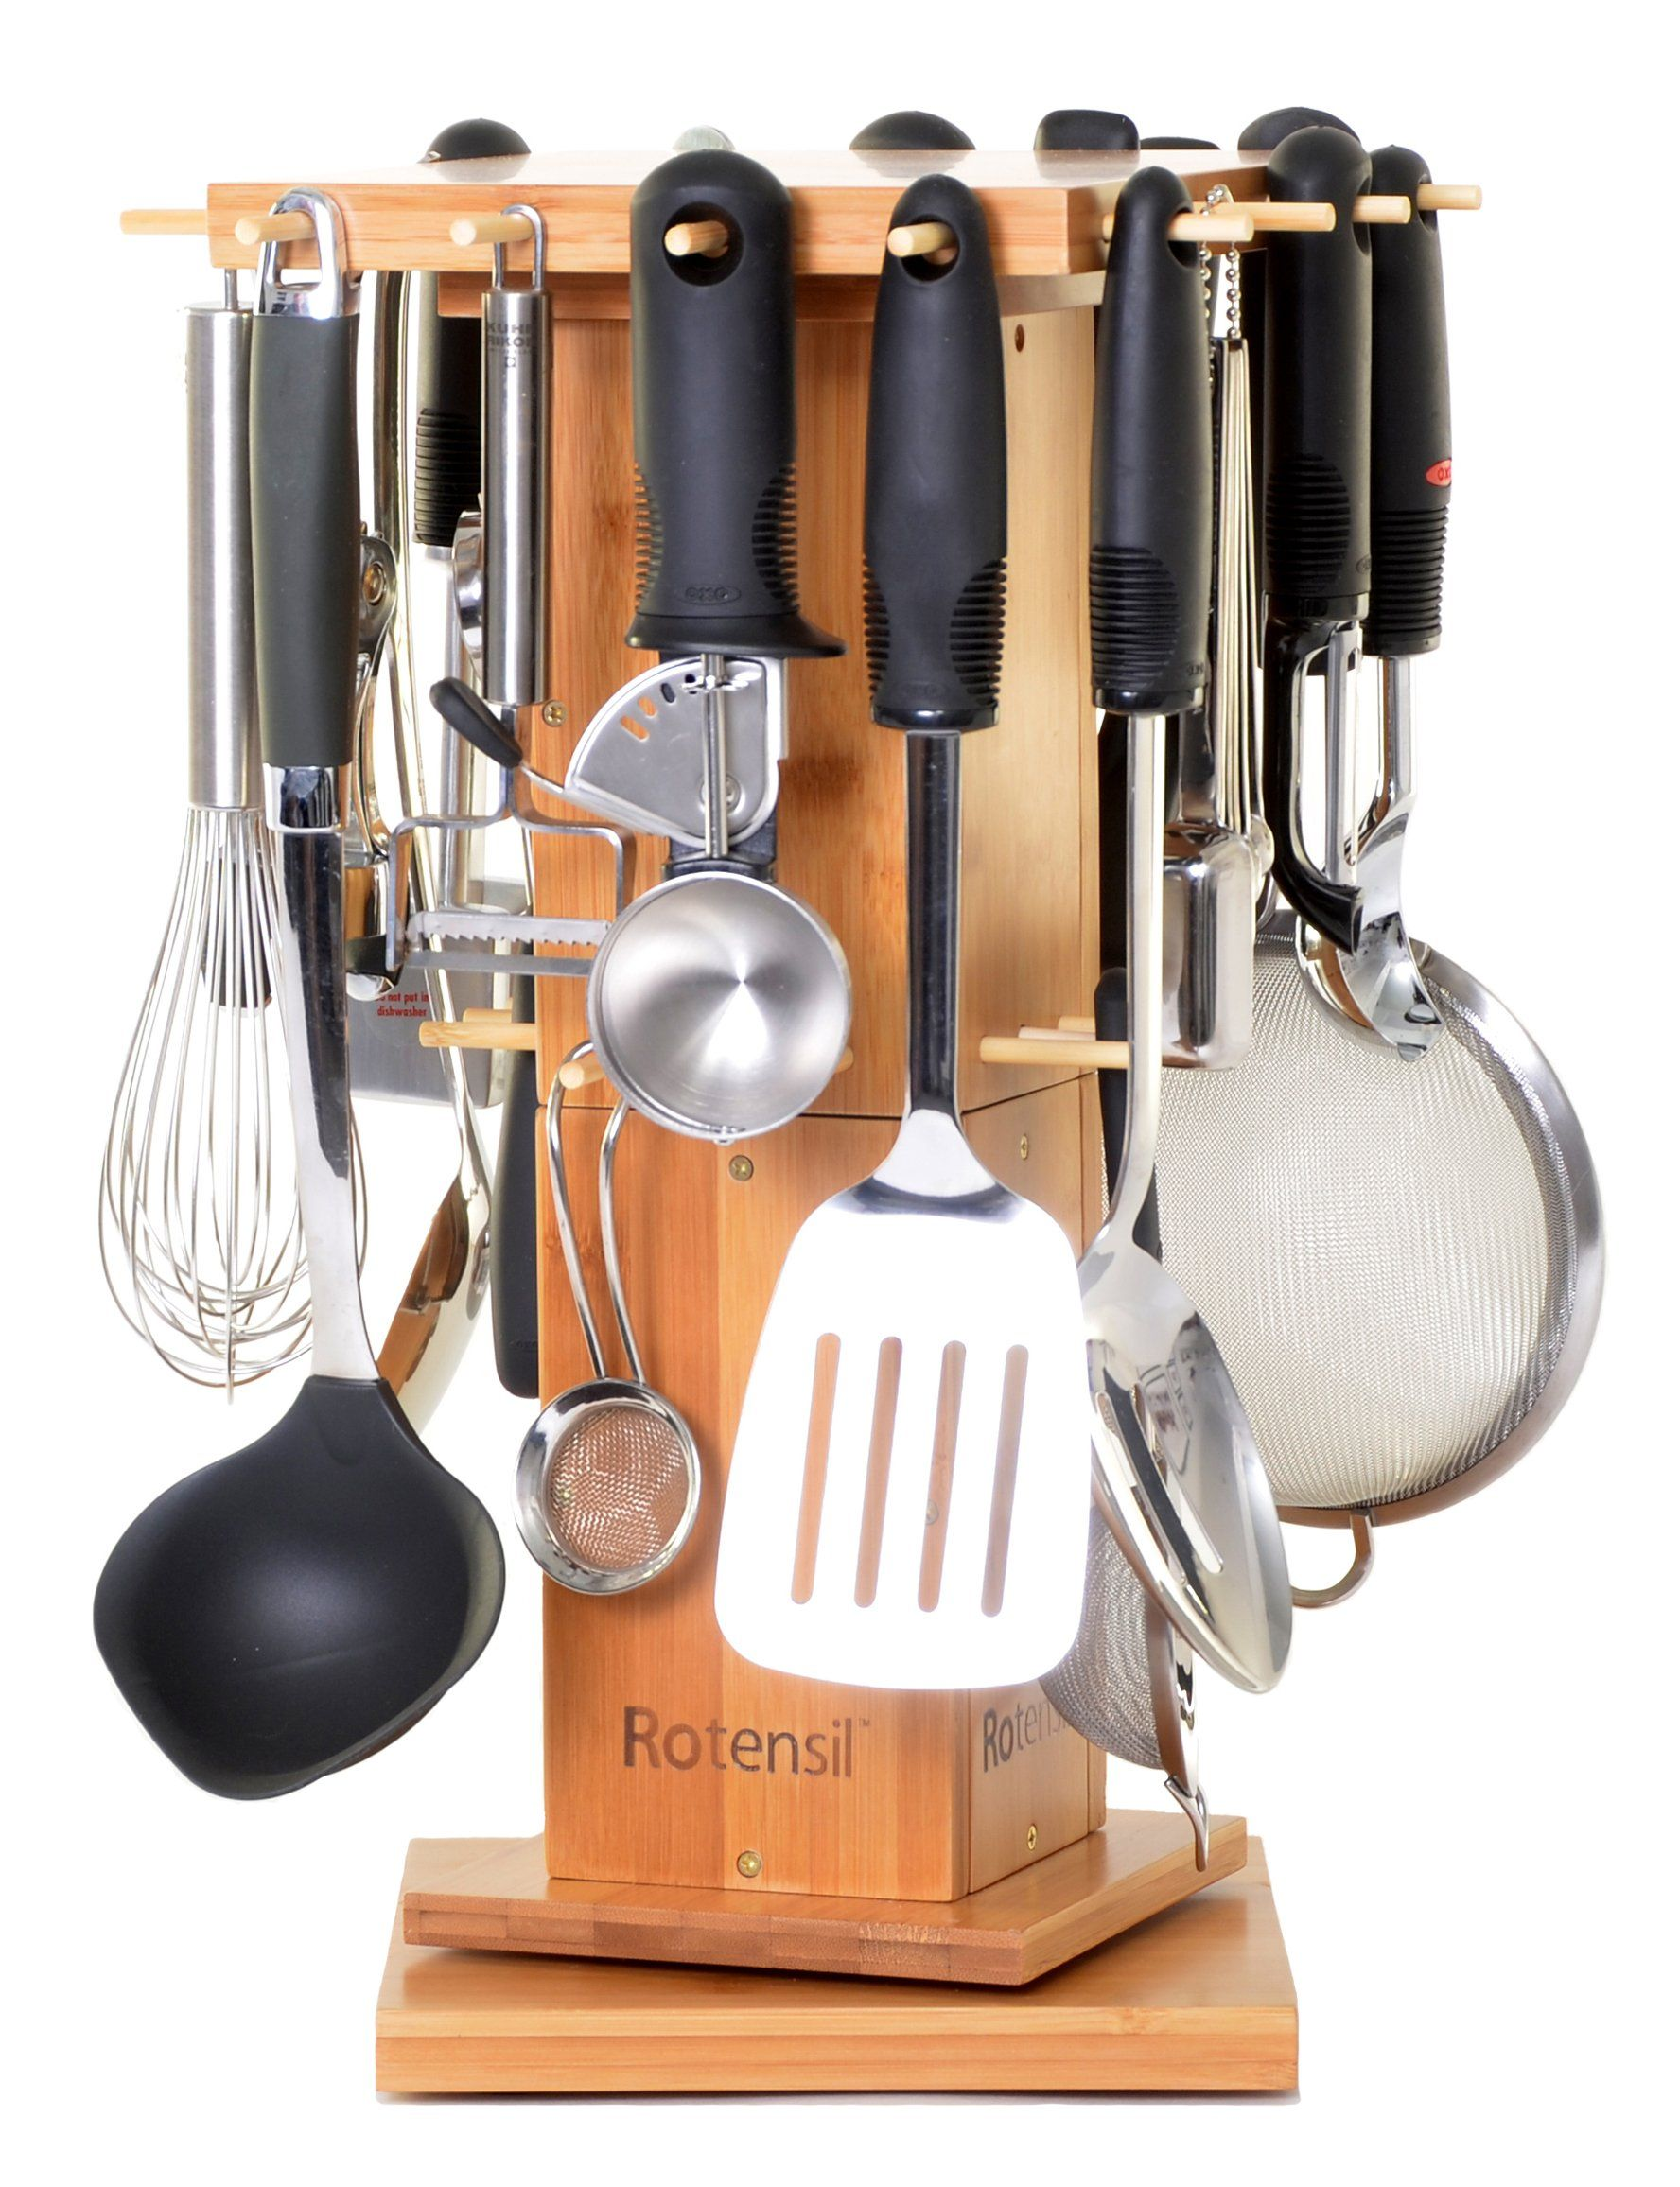 Rotating Kitchen Utensil Organizer By Rotensil Be Sure To